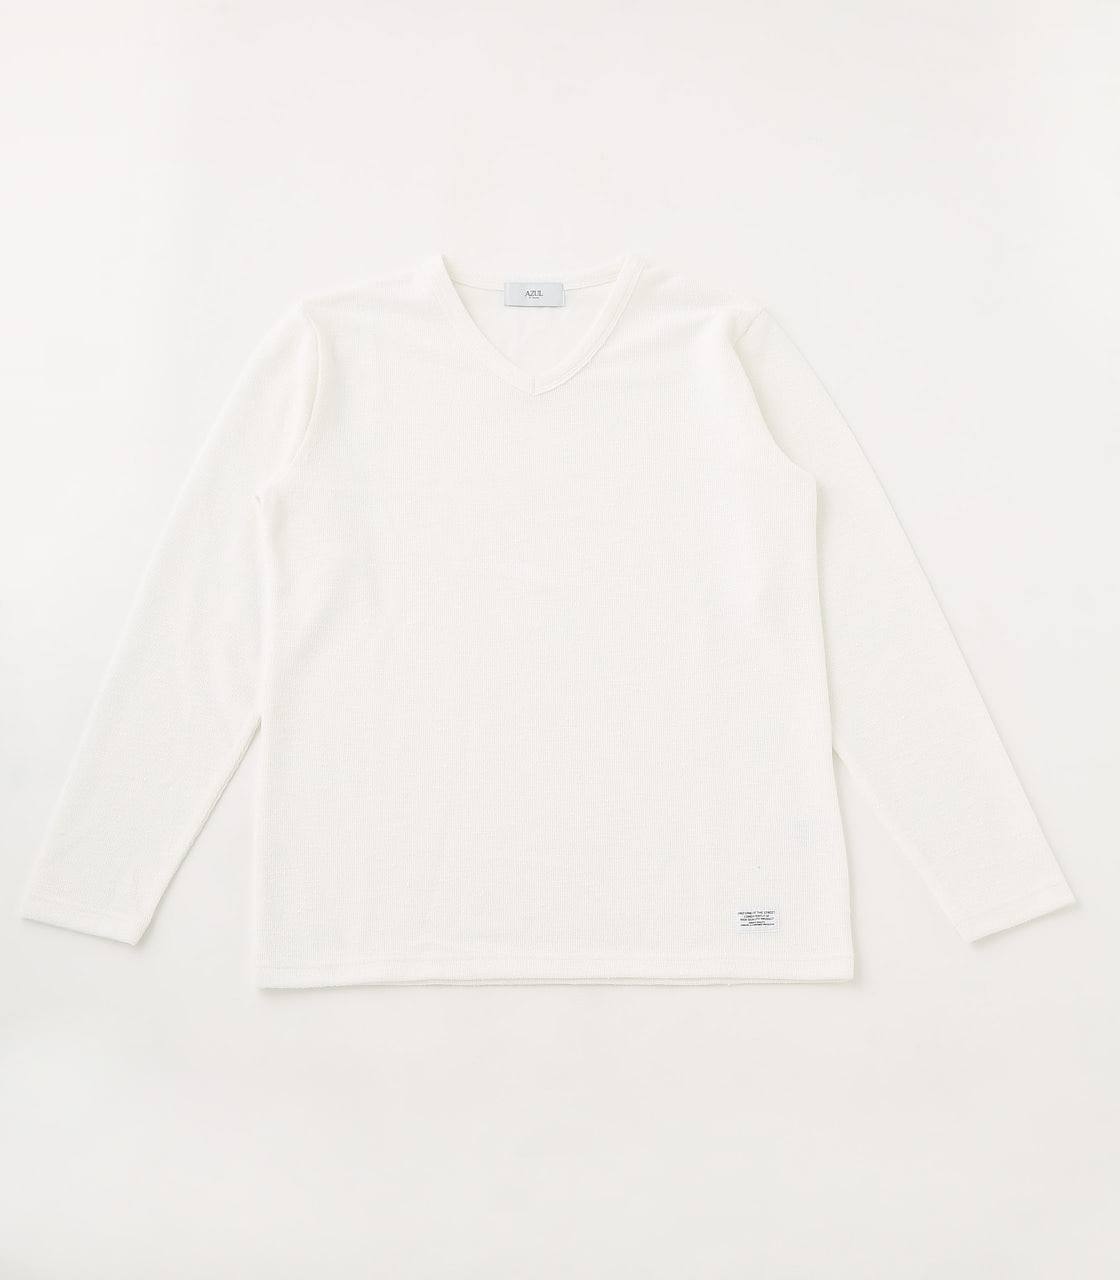 【AZUL BY MOUSSY】SLUB PILE LONG SLEEVE 詳細画像 WHT 1